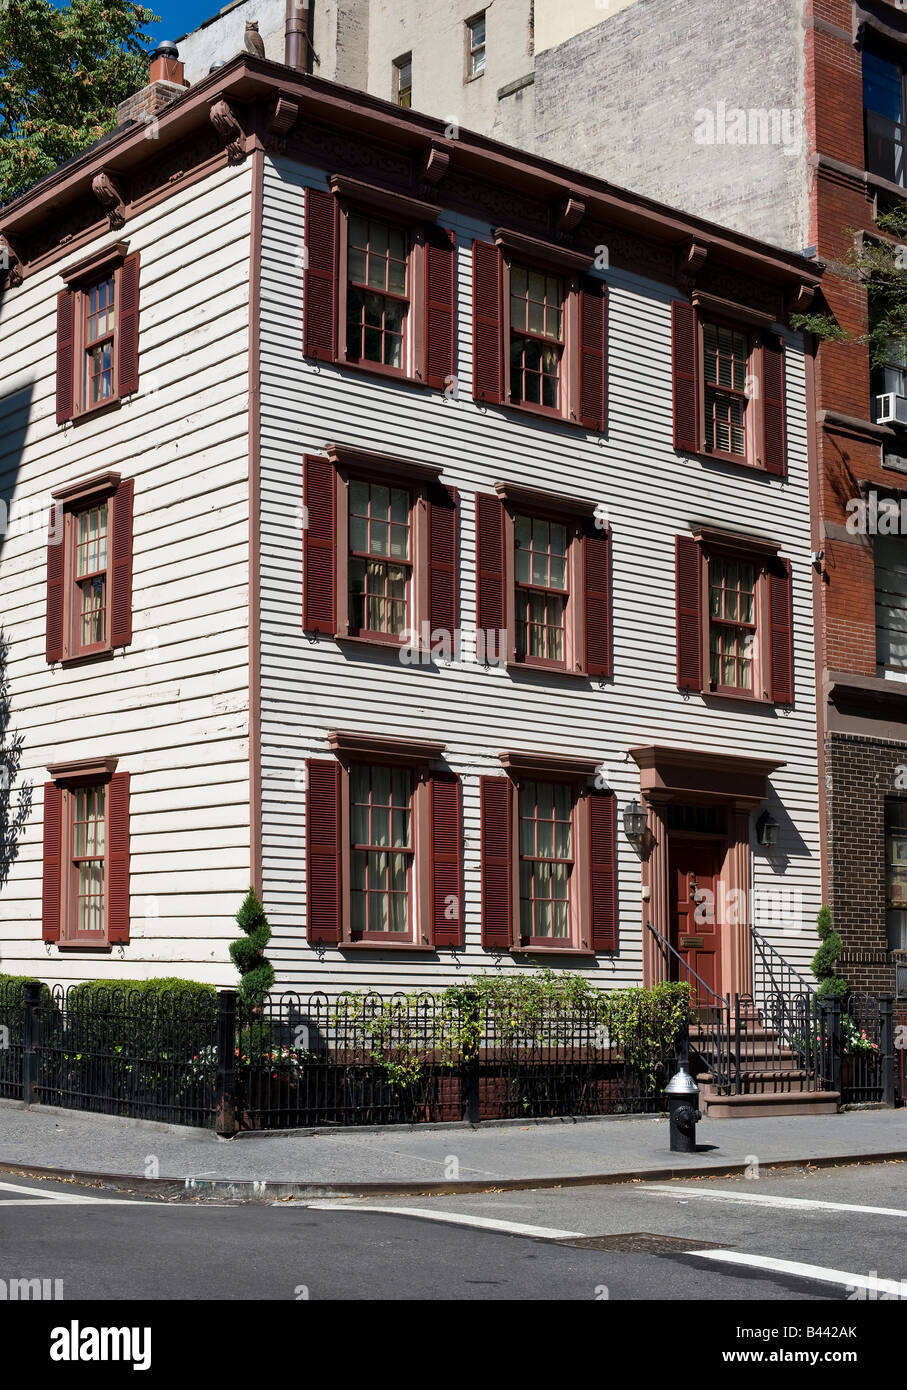 William Hyde house at Bedford Street, Greenwich Village, New York City Stock Photo